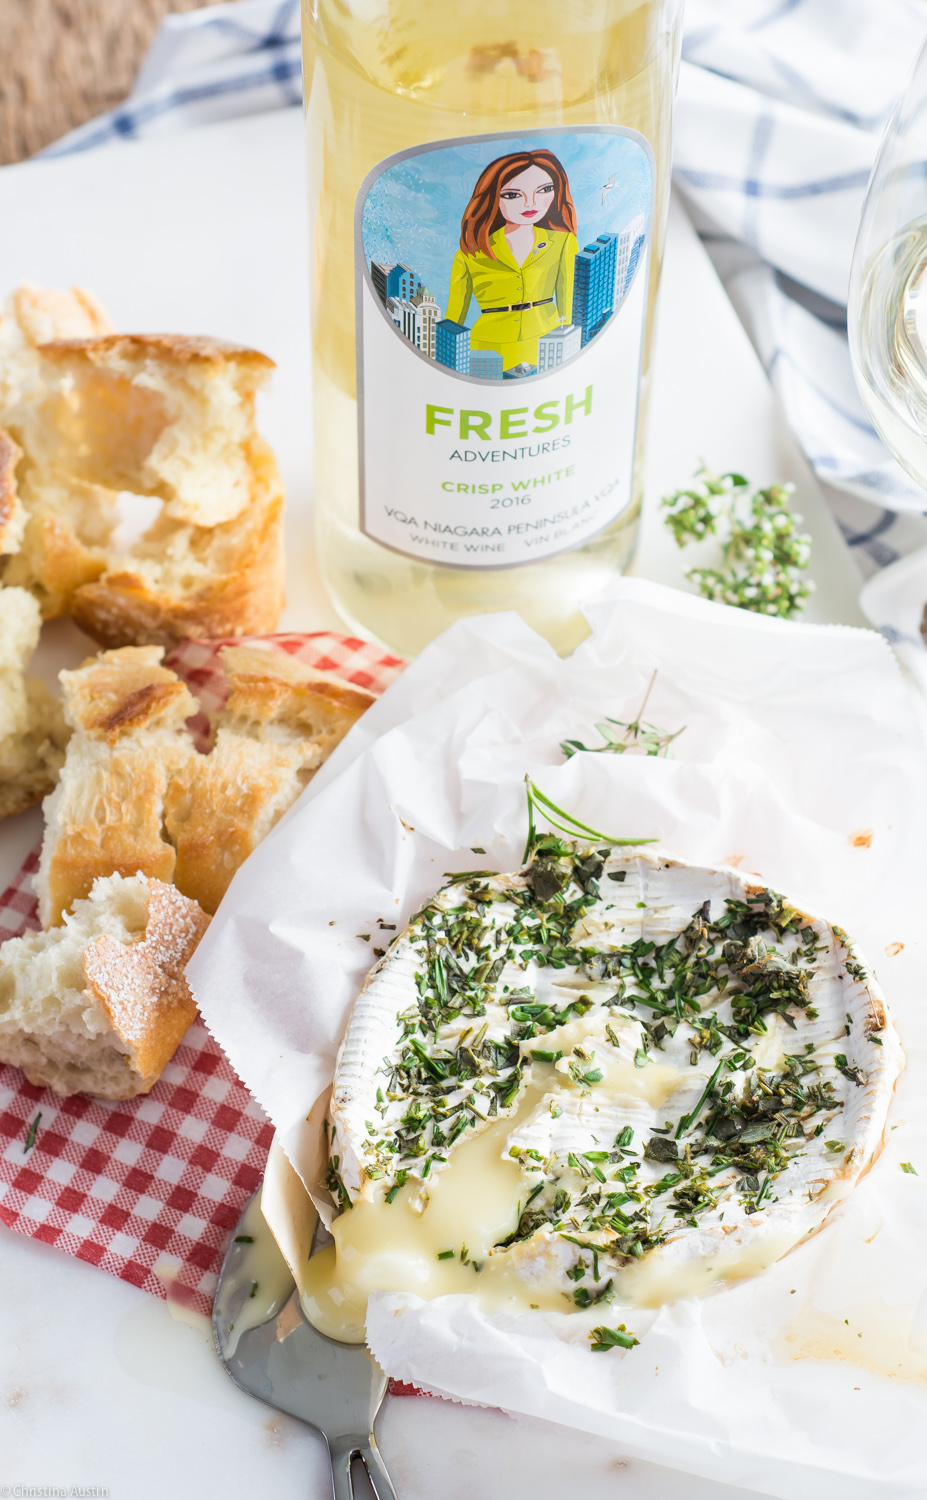 Baked Camembert with herbs and wine